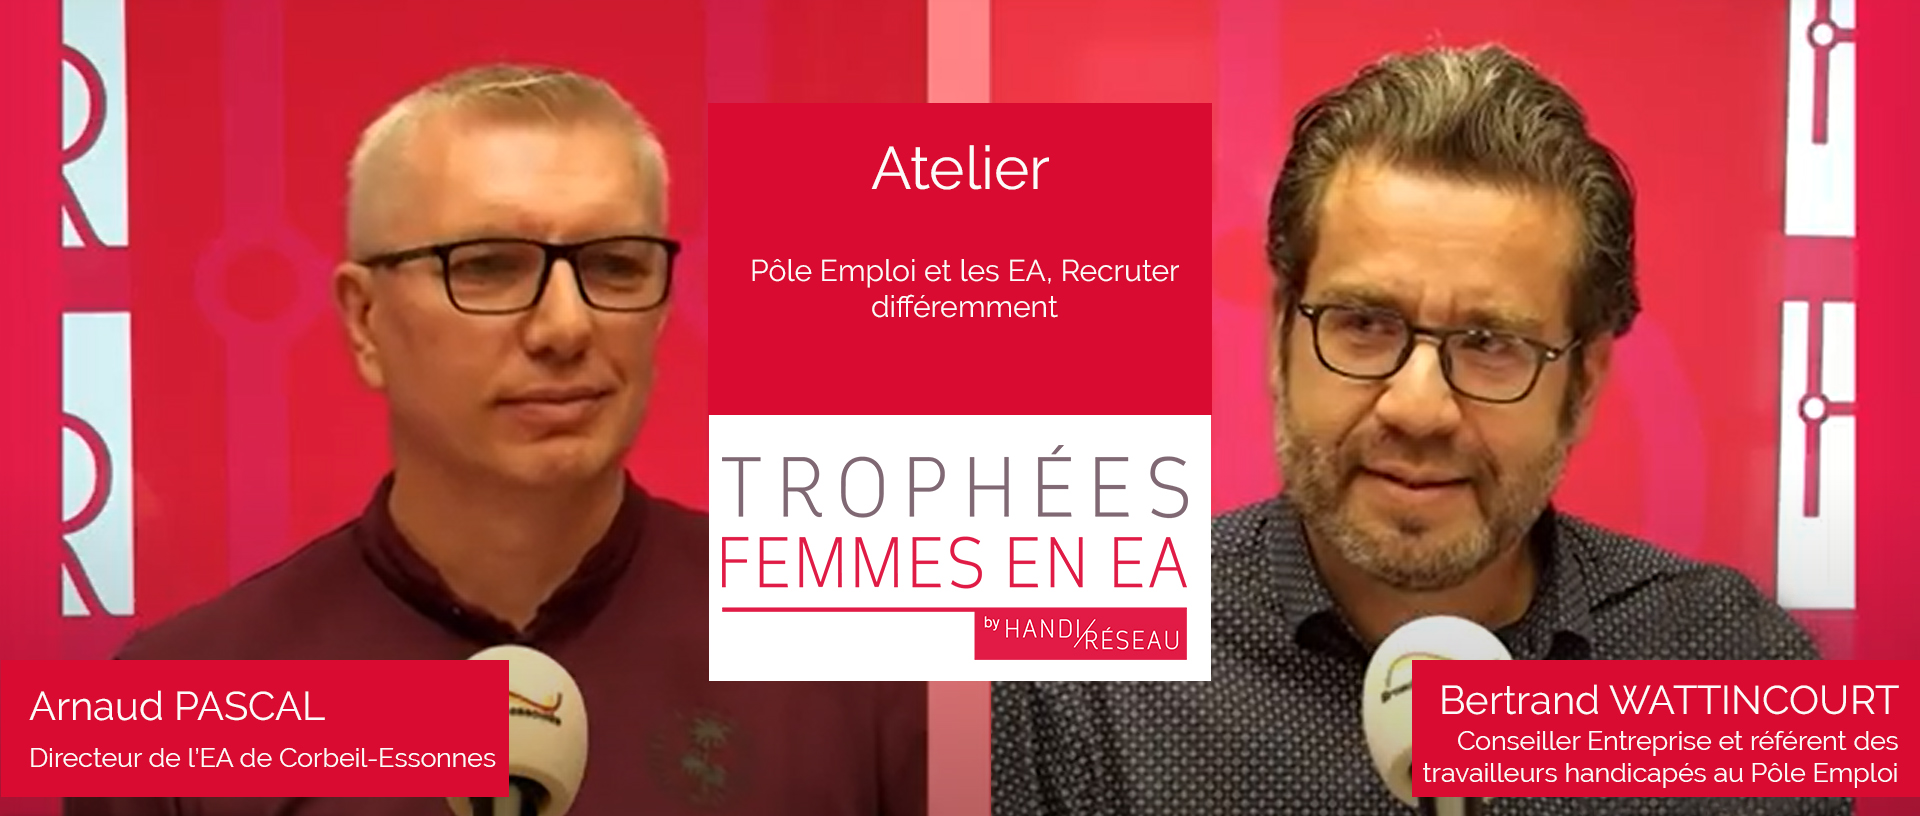 Interview Arnaud Pascal et Bertrand_FEEA2020